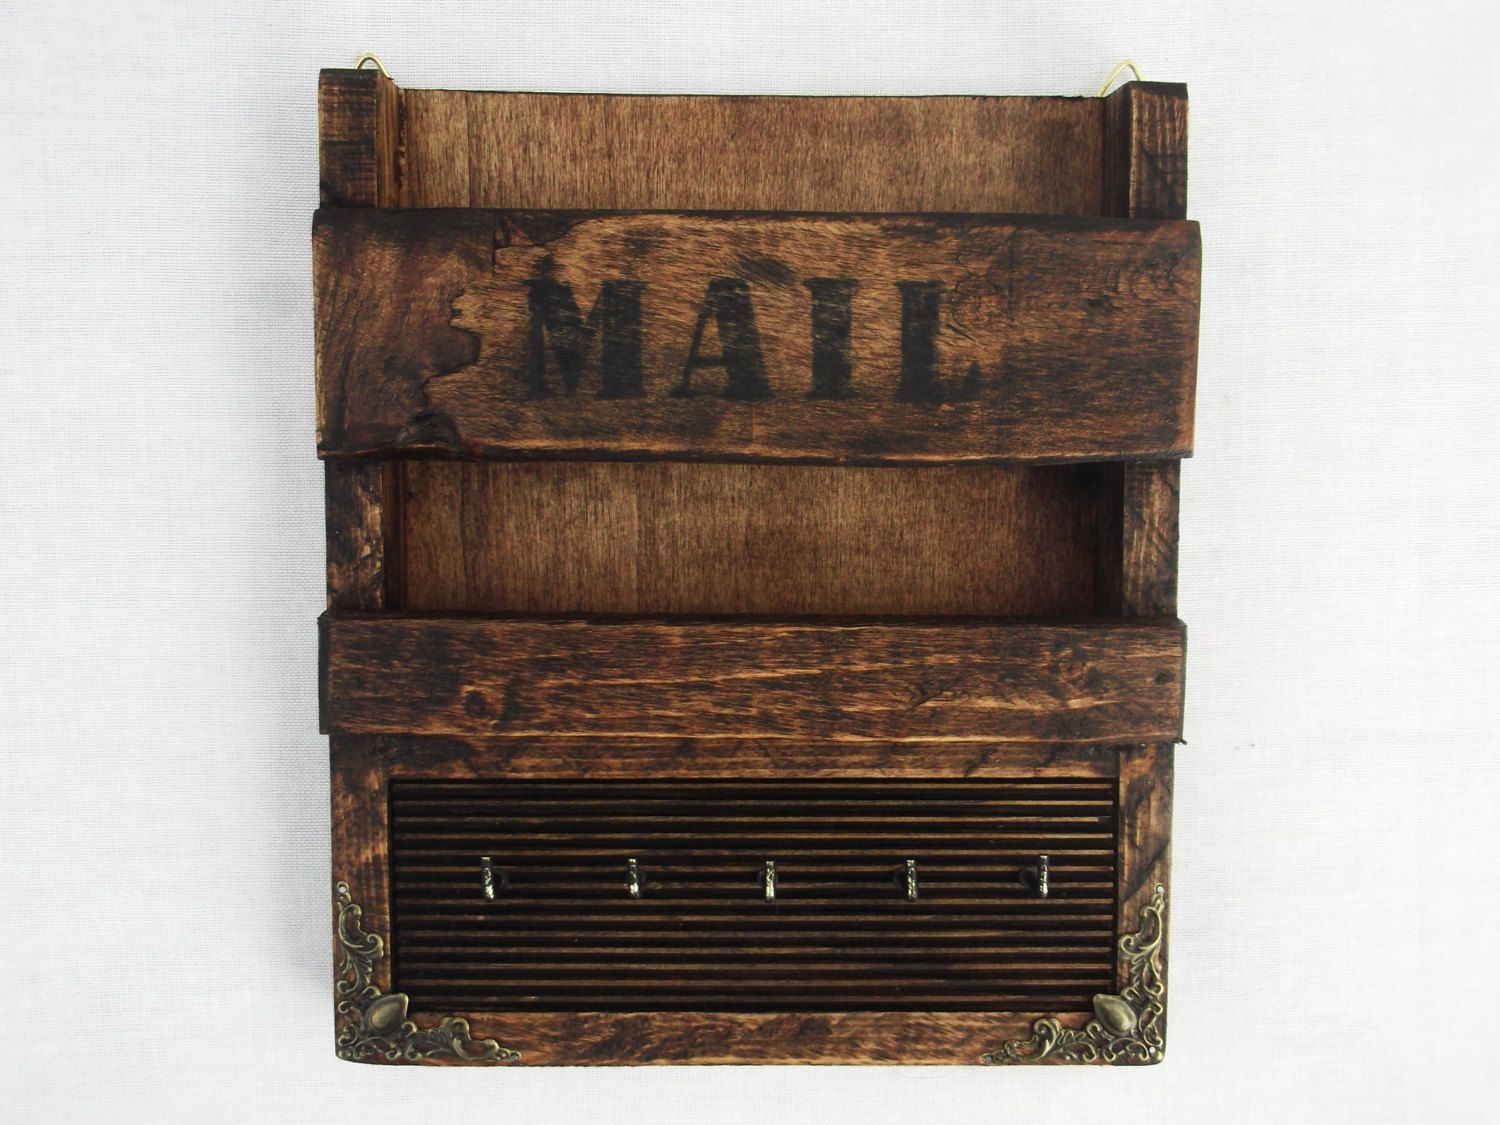 Rustic Wooden Wall Hanging Mail Holder And Key Rack Letter Organizer Hooks Mail Holder